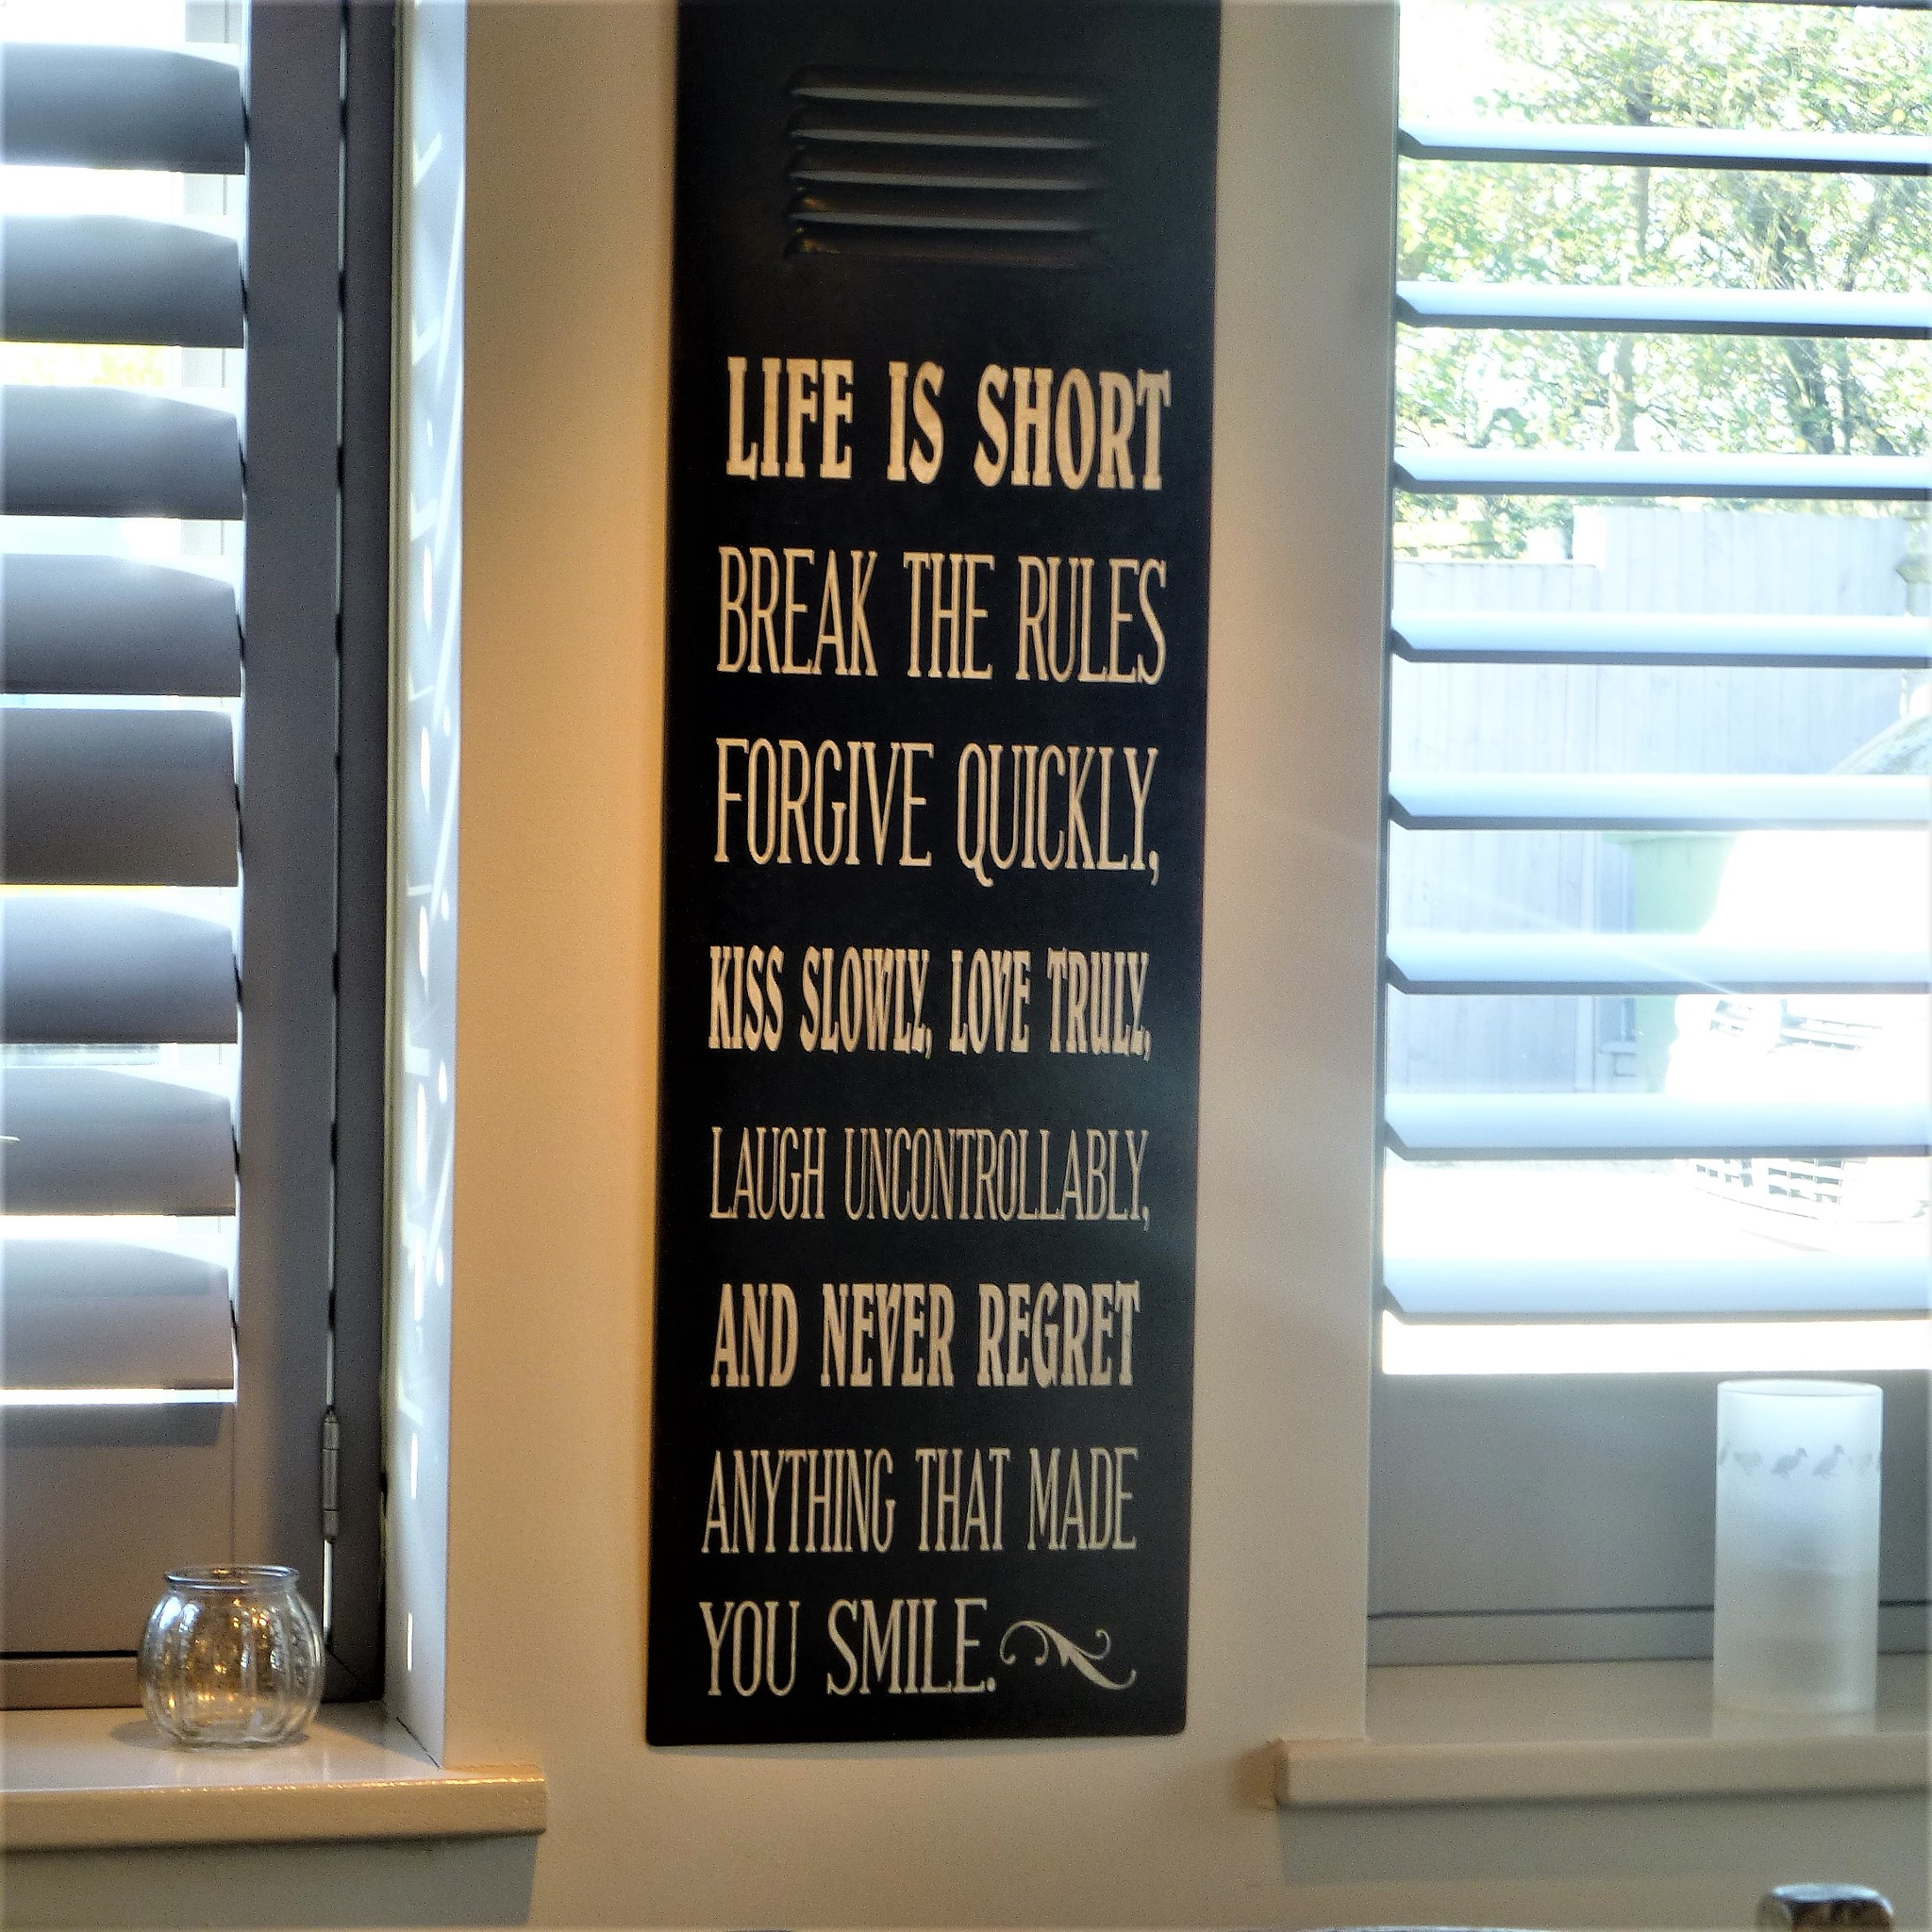 LIFE is SHORT . . .  by beverley